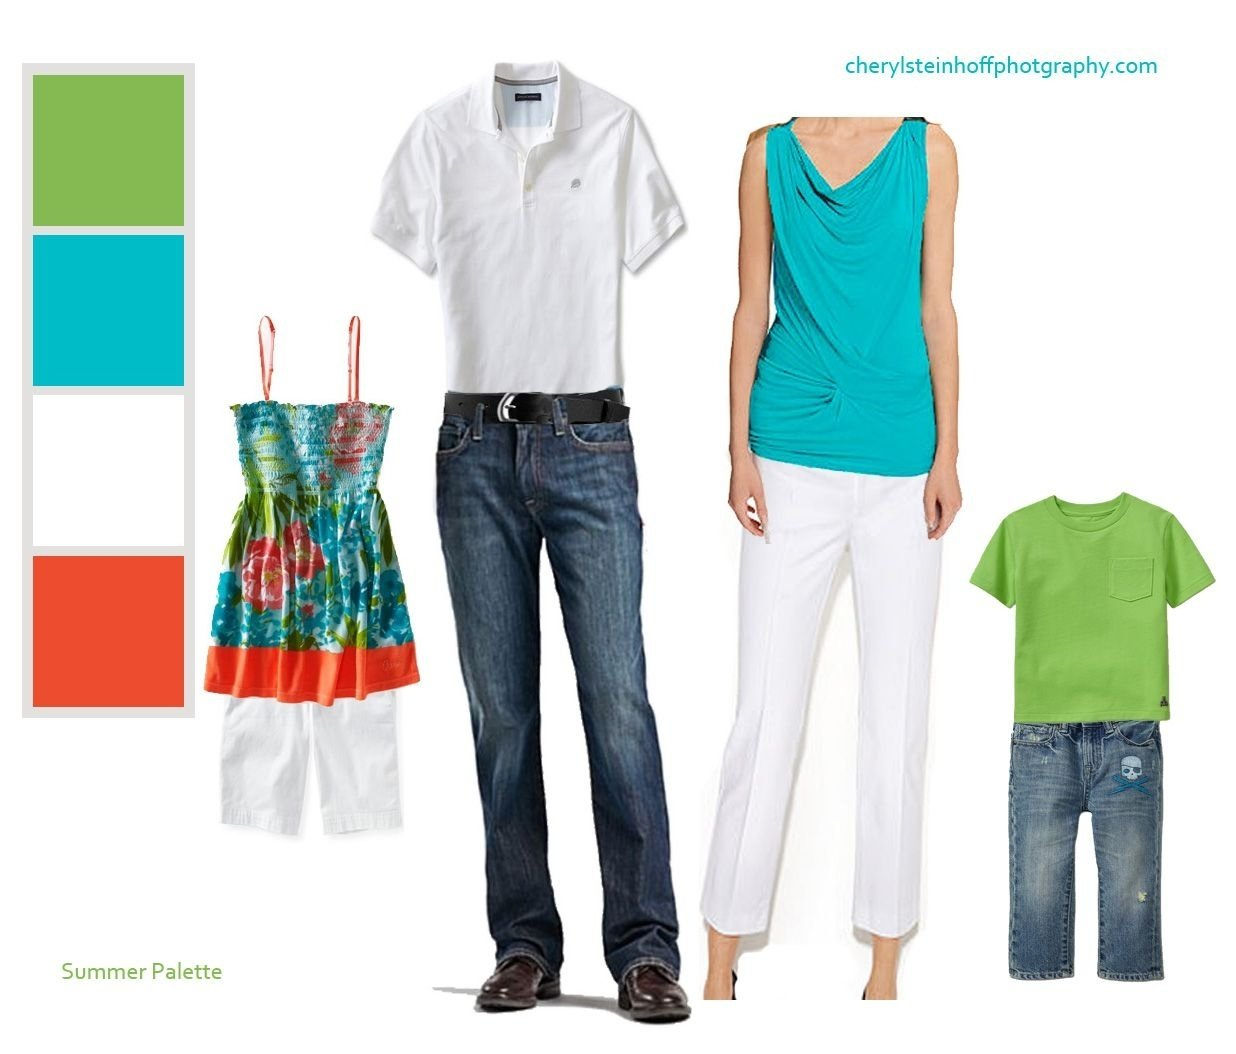 10 Cute Summer Family Photo Clothing Ideas clothing color combination for summer family portraits portraits 2020